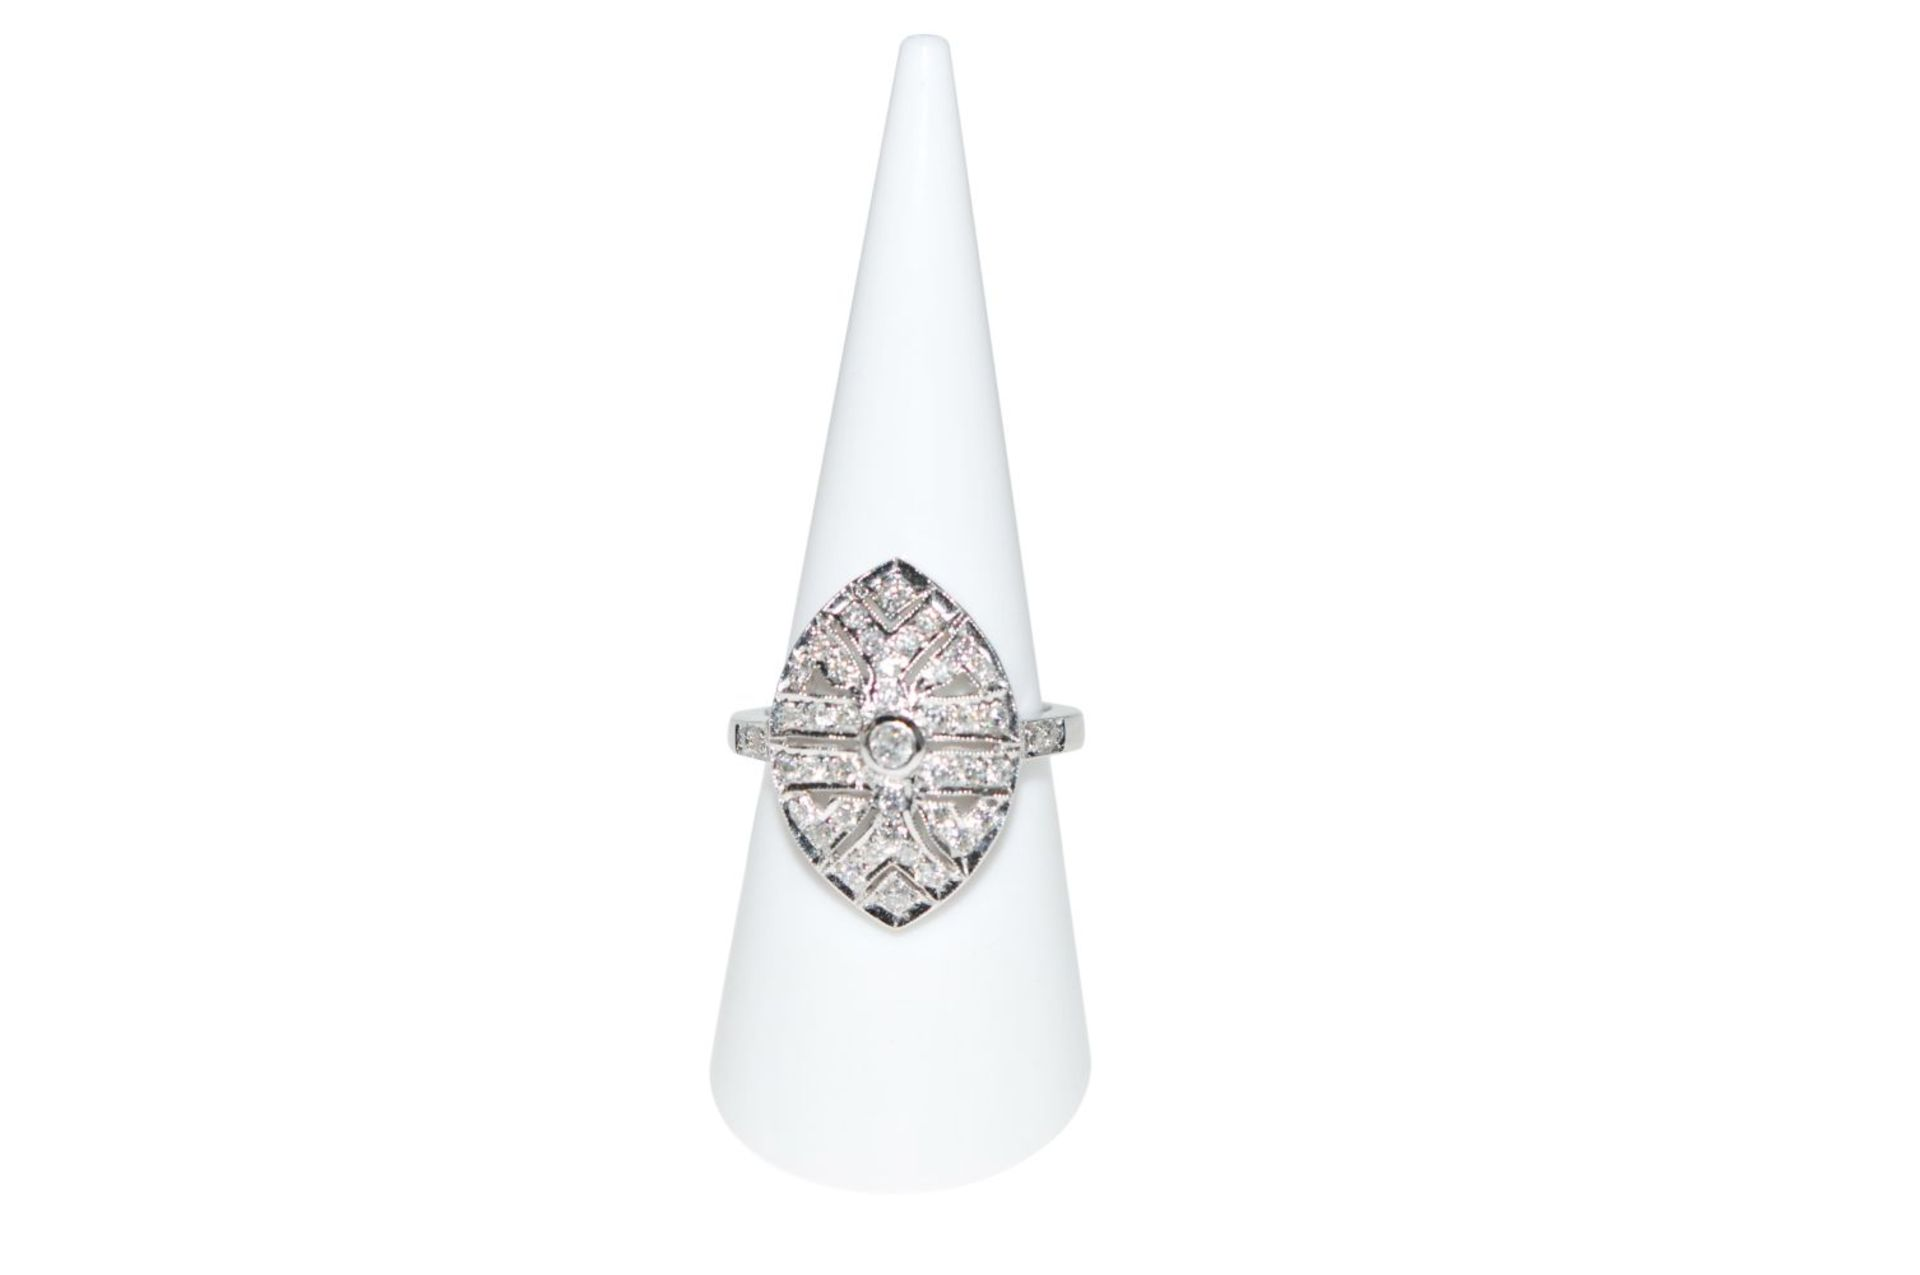 Los 102 - Diamond ring18Kt white gold ring with diamonds total carat weight approx. 0.83ct, total weight 7.4g,